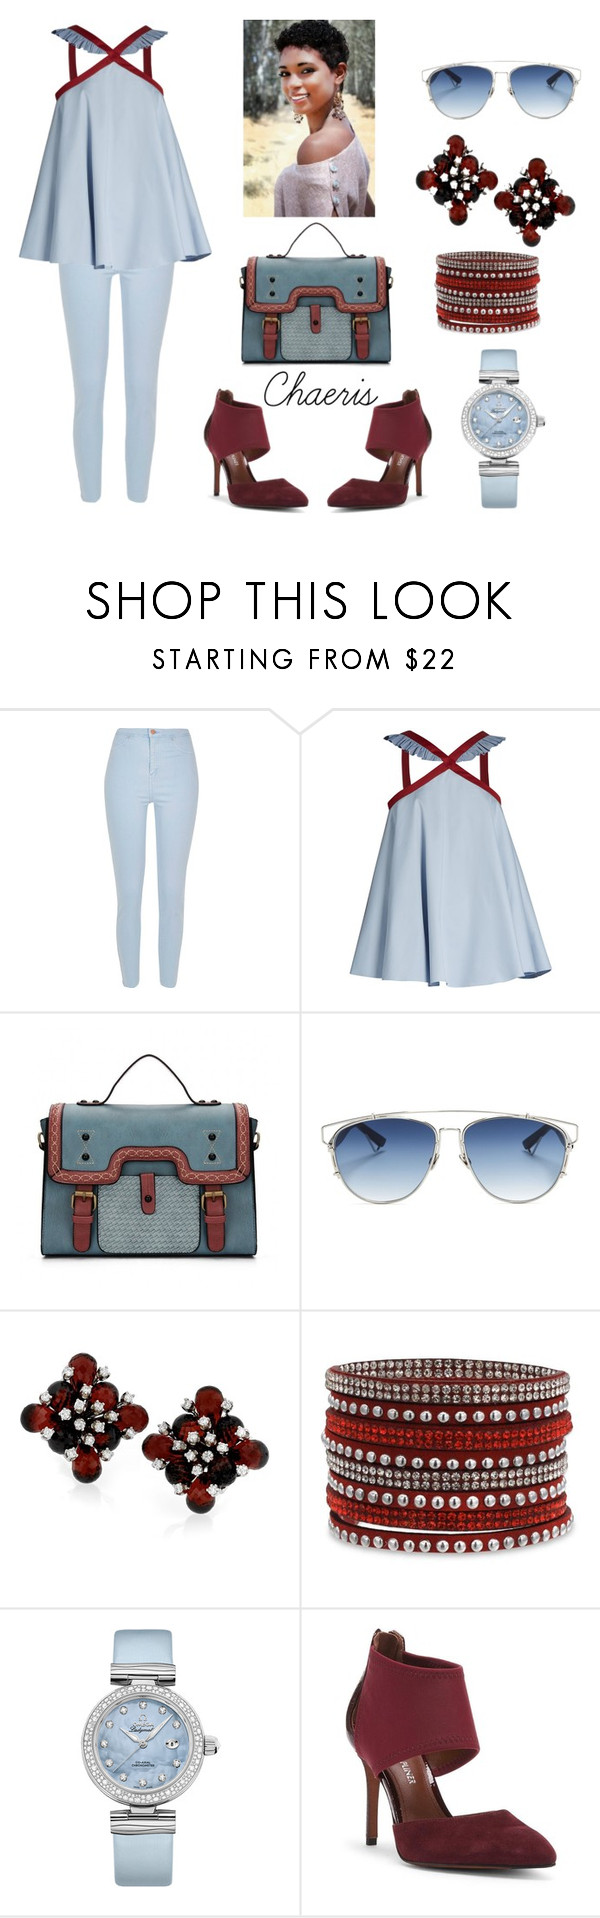 """Light Blue"" by chaeris ❤ liked on Polyvore featuring River Island, Anna October, Christian Dior, OMEGA and Donald J Pliner"